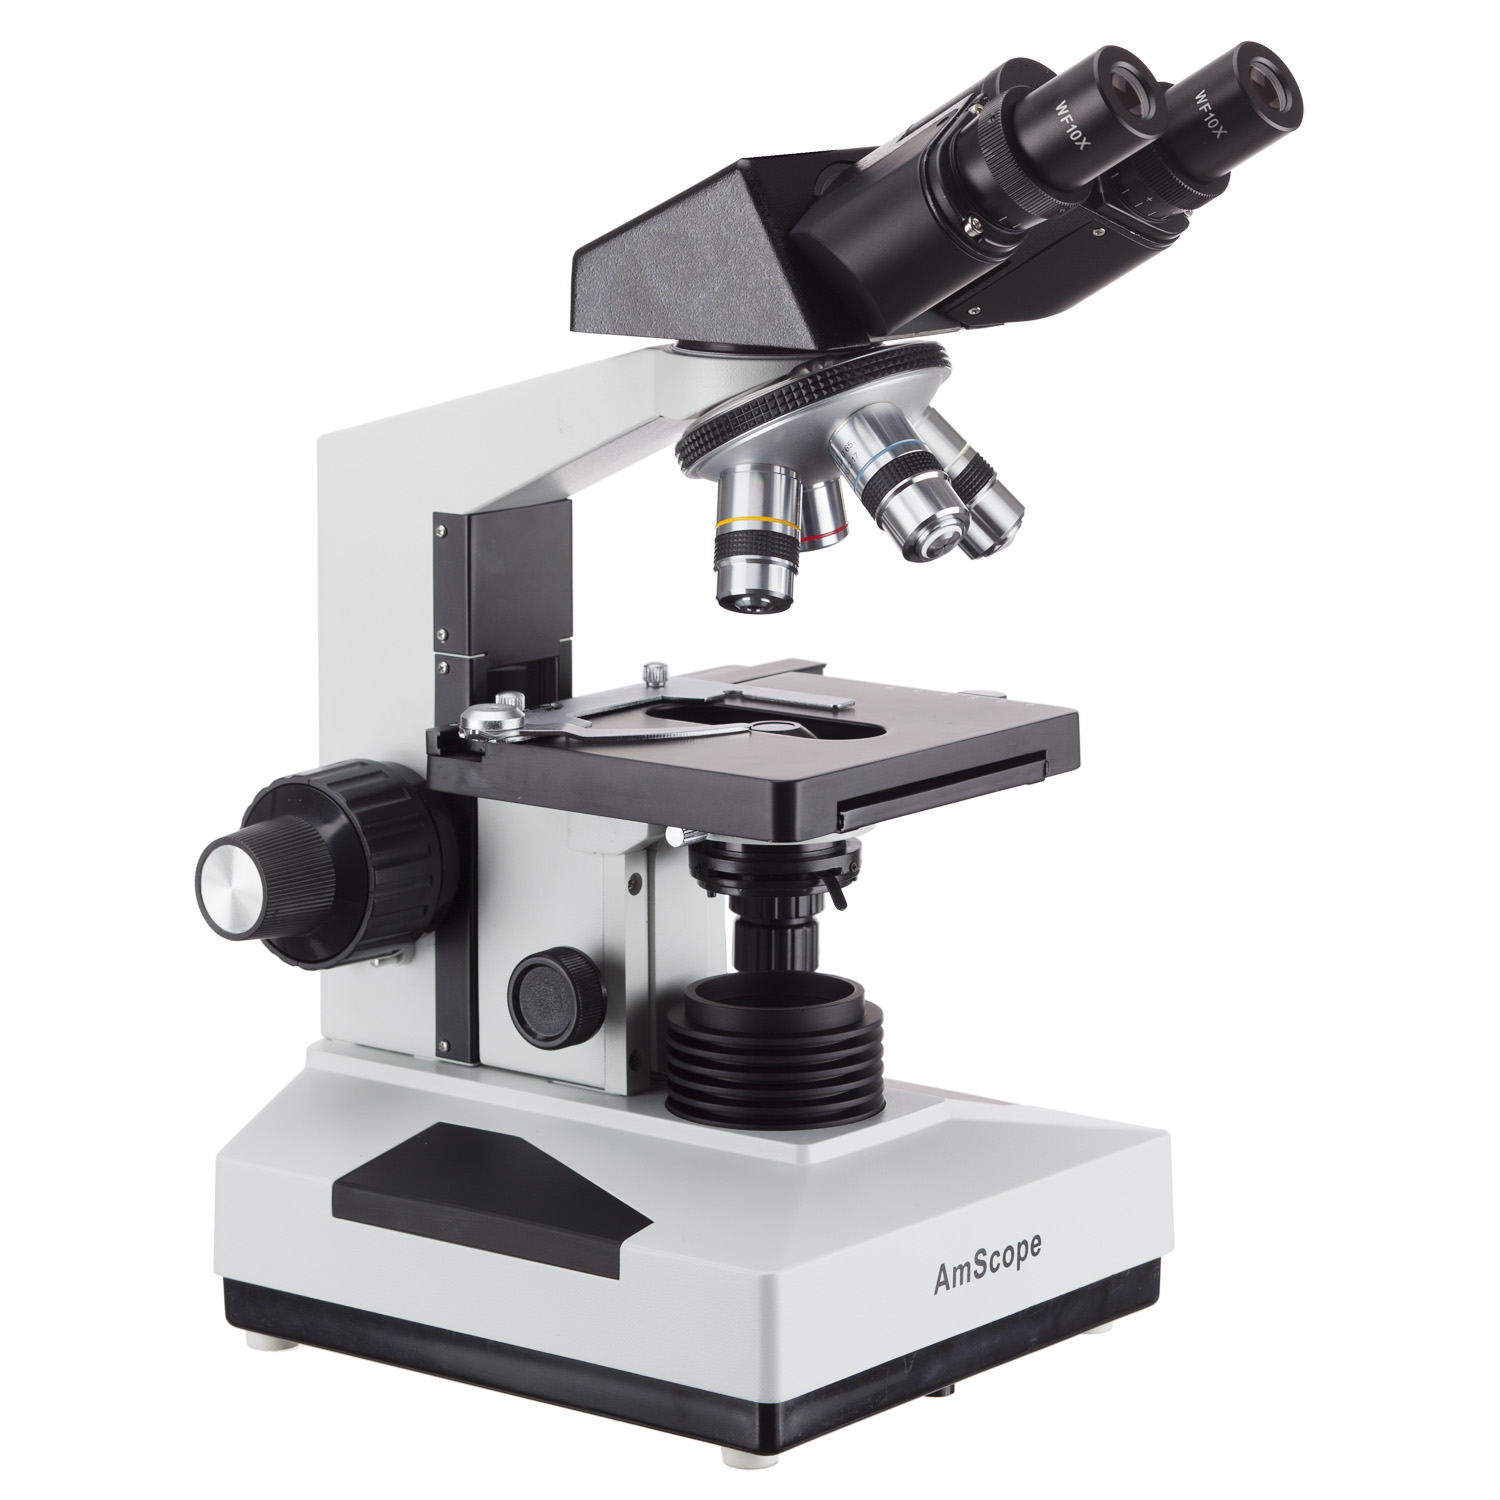 AmScope 40X-2000X Binocular Biological Microscope